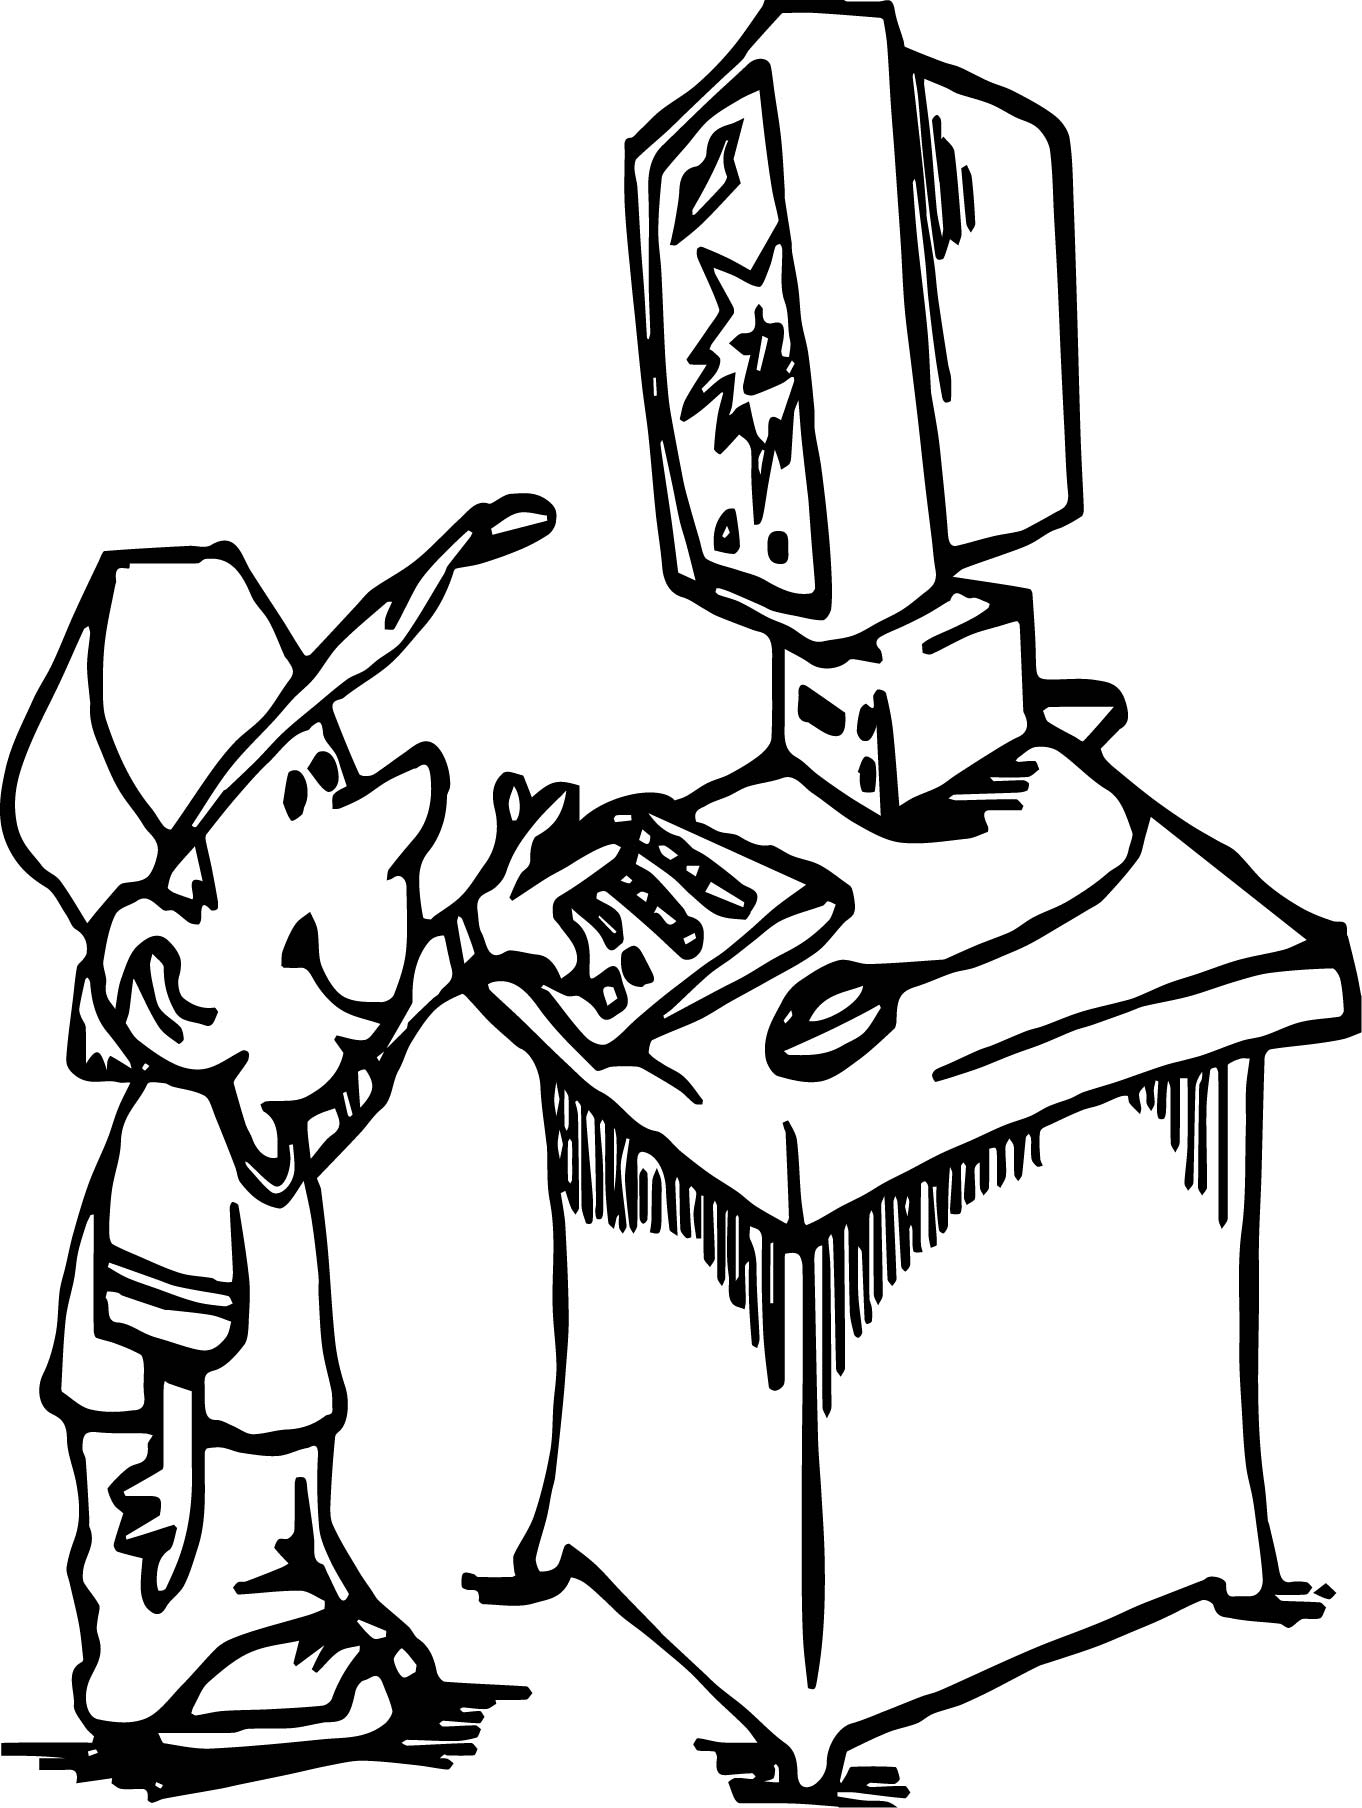 small boy playing computer games coloring page wecoloringpage